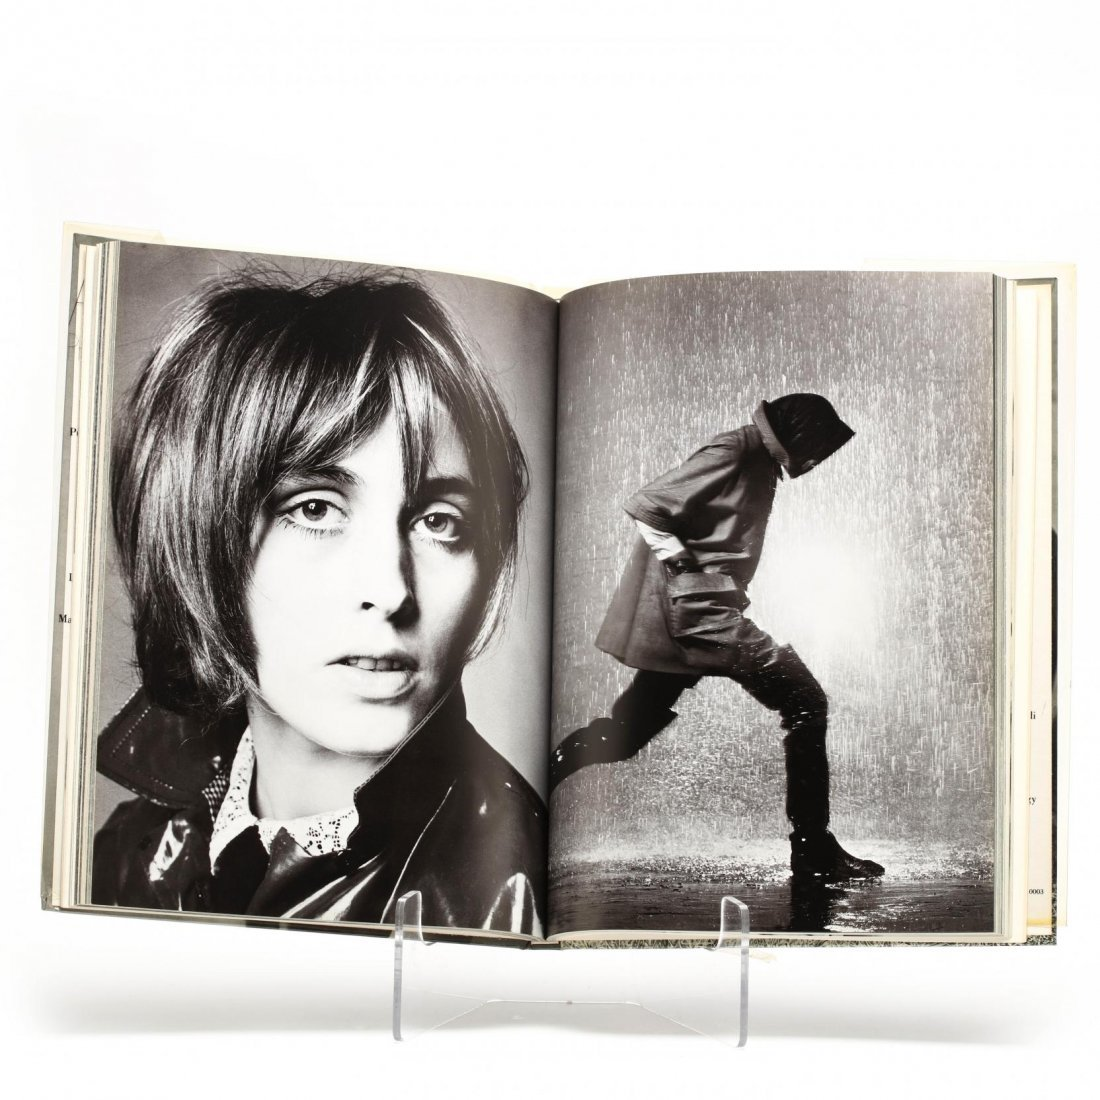 Three Photography Books - Avedon and Leibovitz - 3